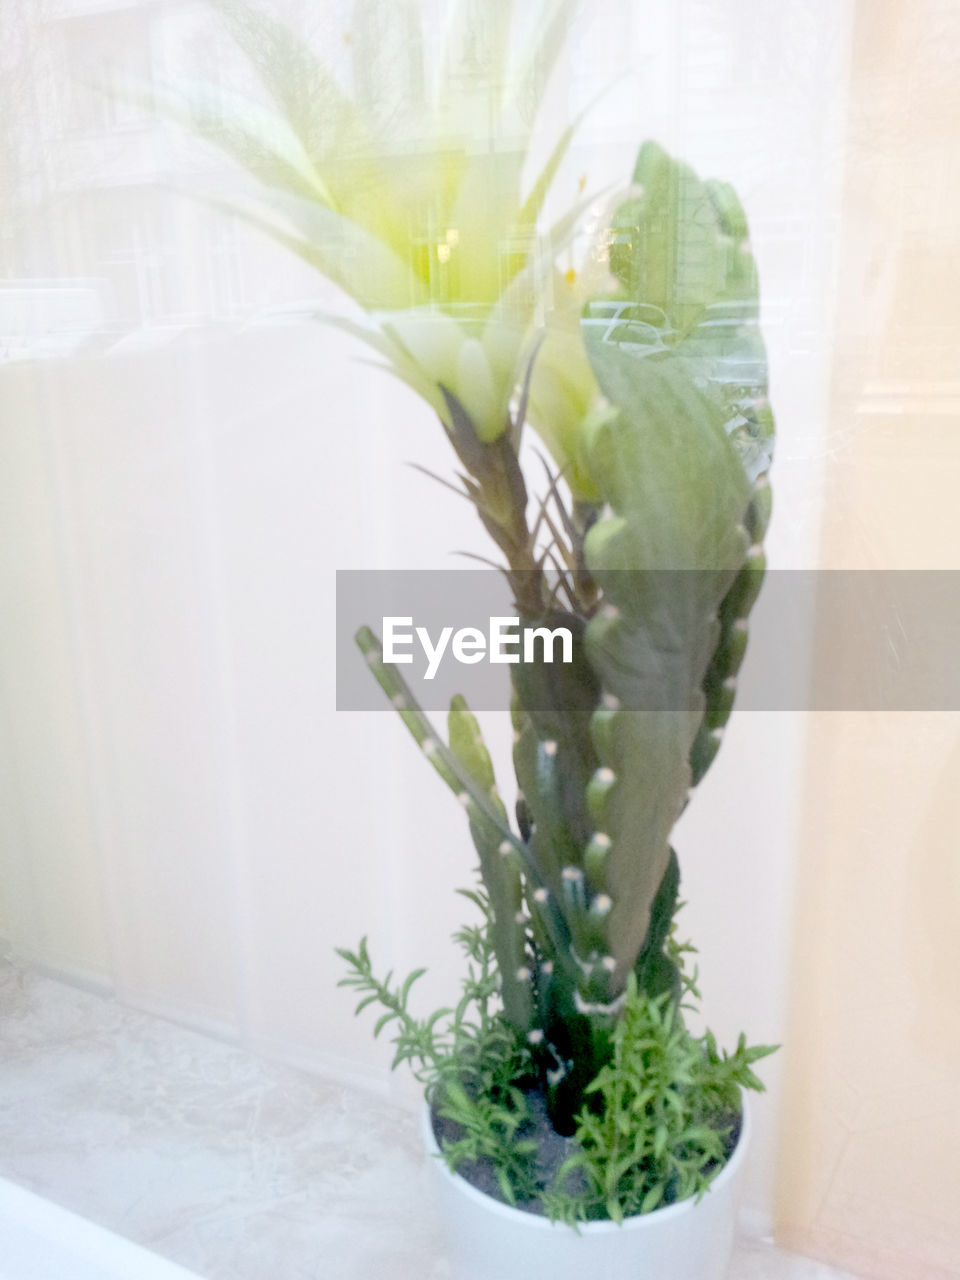 plant, indoors, growth, potted plant, leaf, green color, no people, close-up, freshness, nature, day